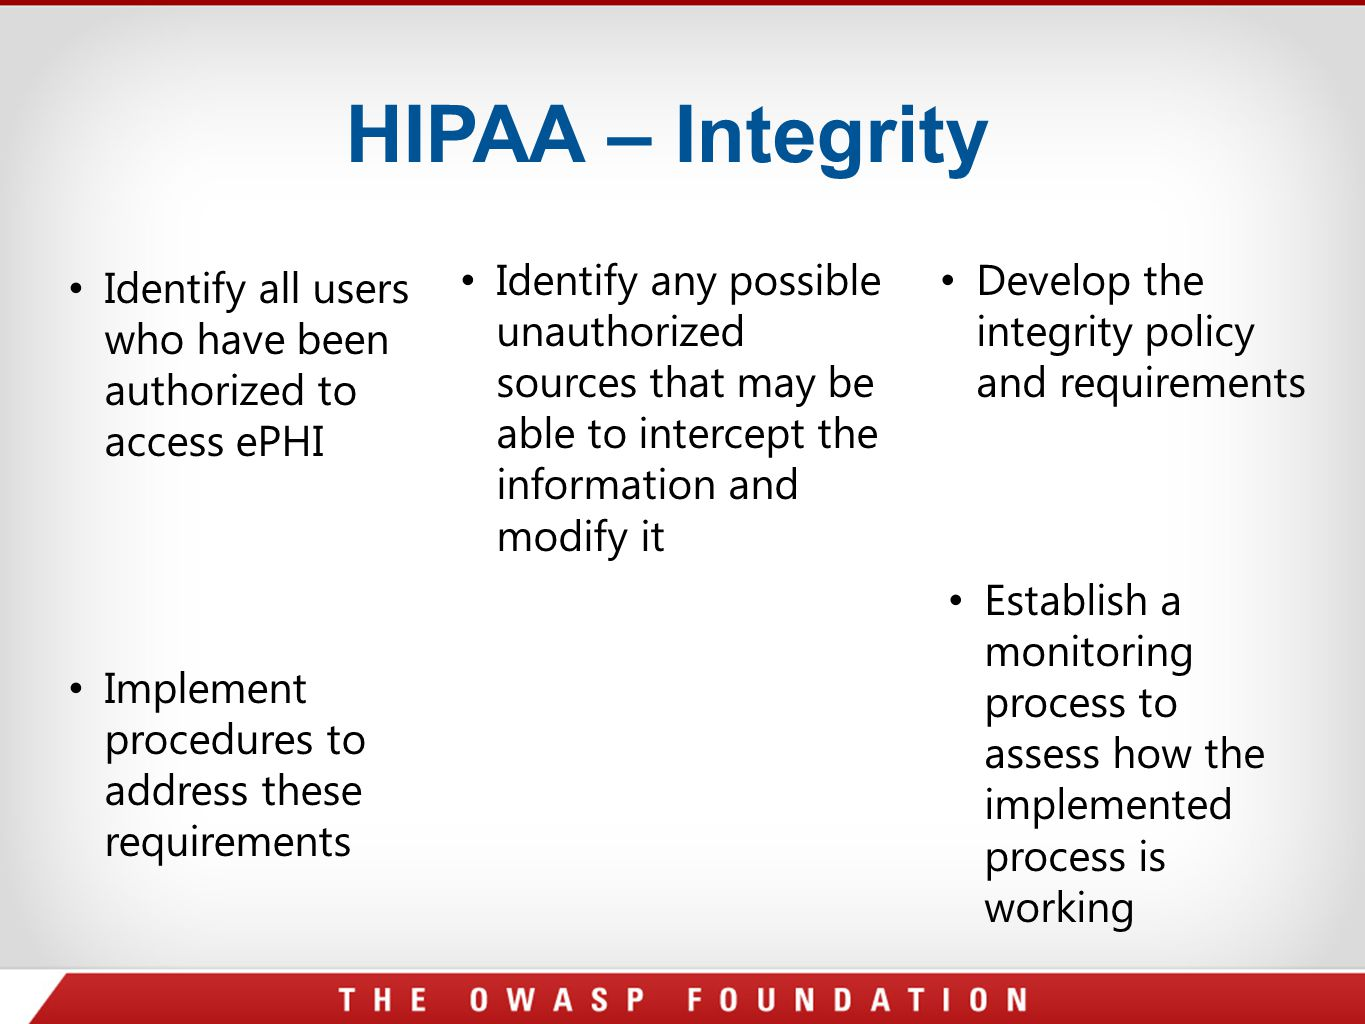 HIPAA – Integrity Identify any possible unauthorized sources that may be able to intercept the information and modify it.